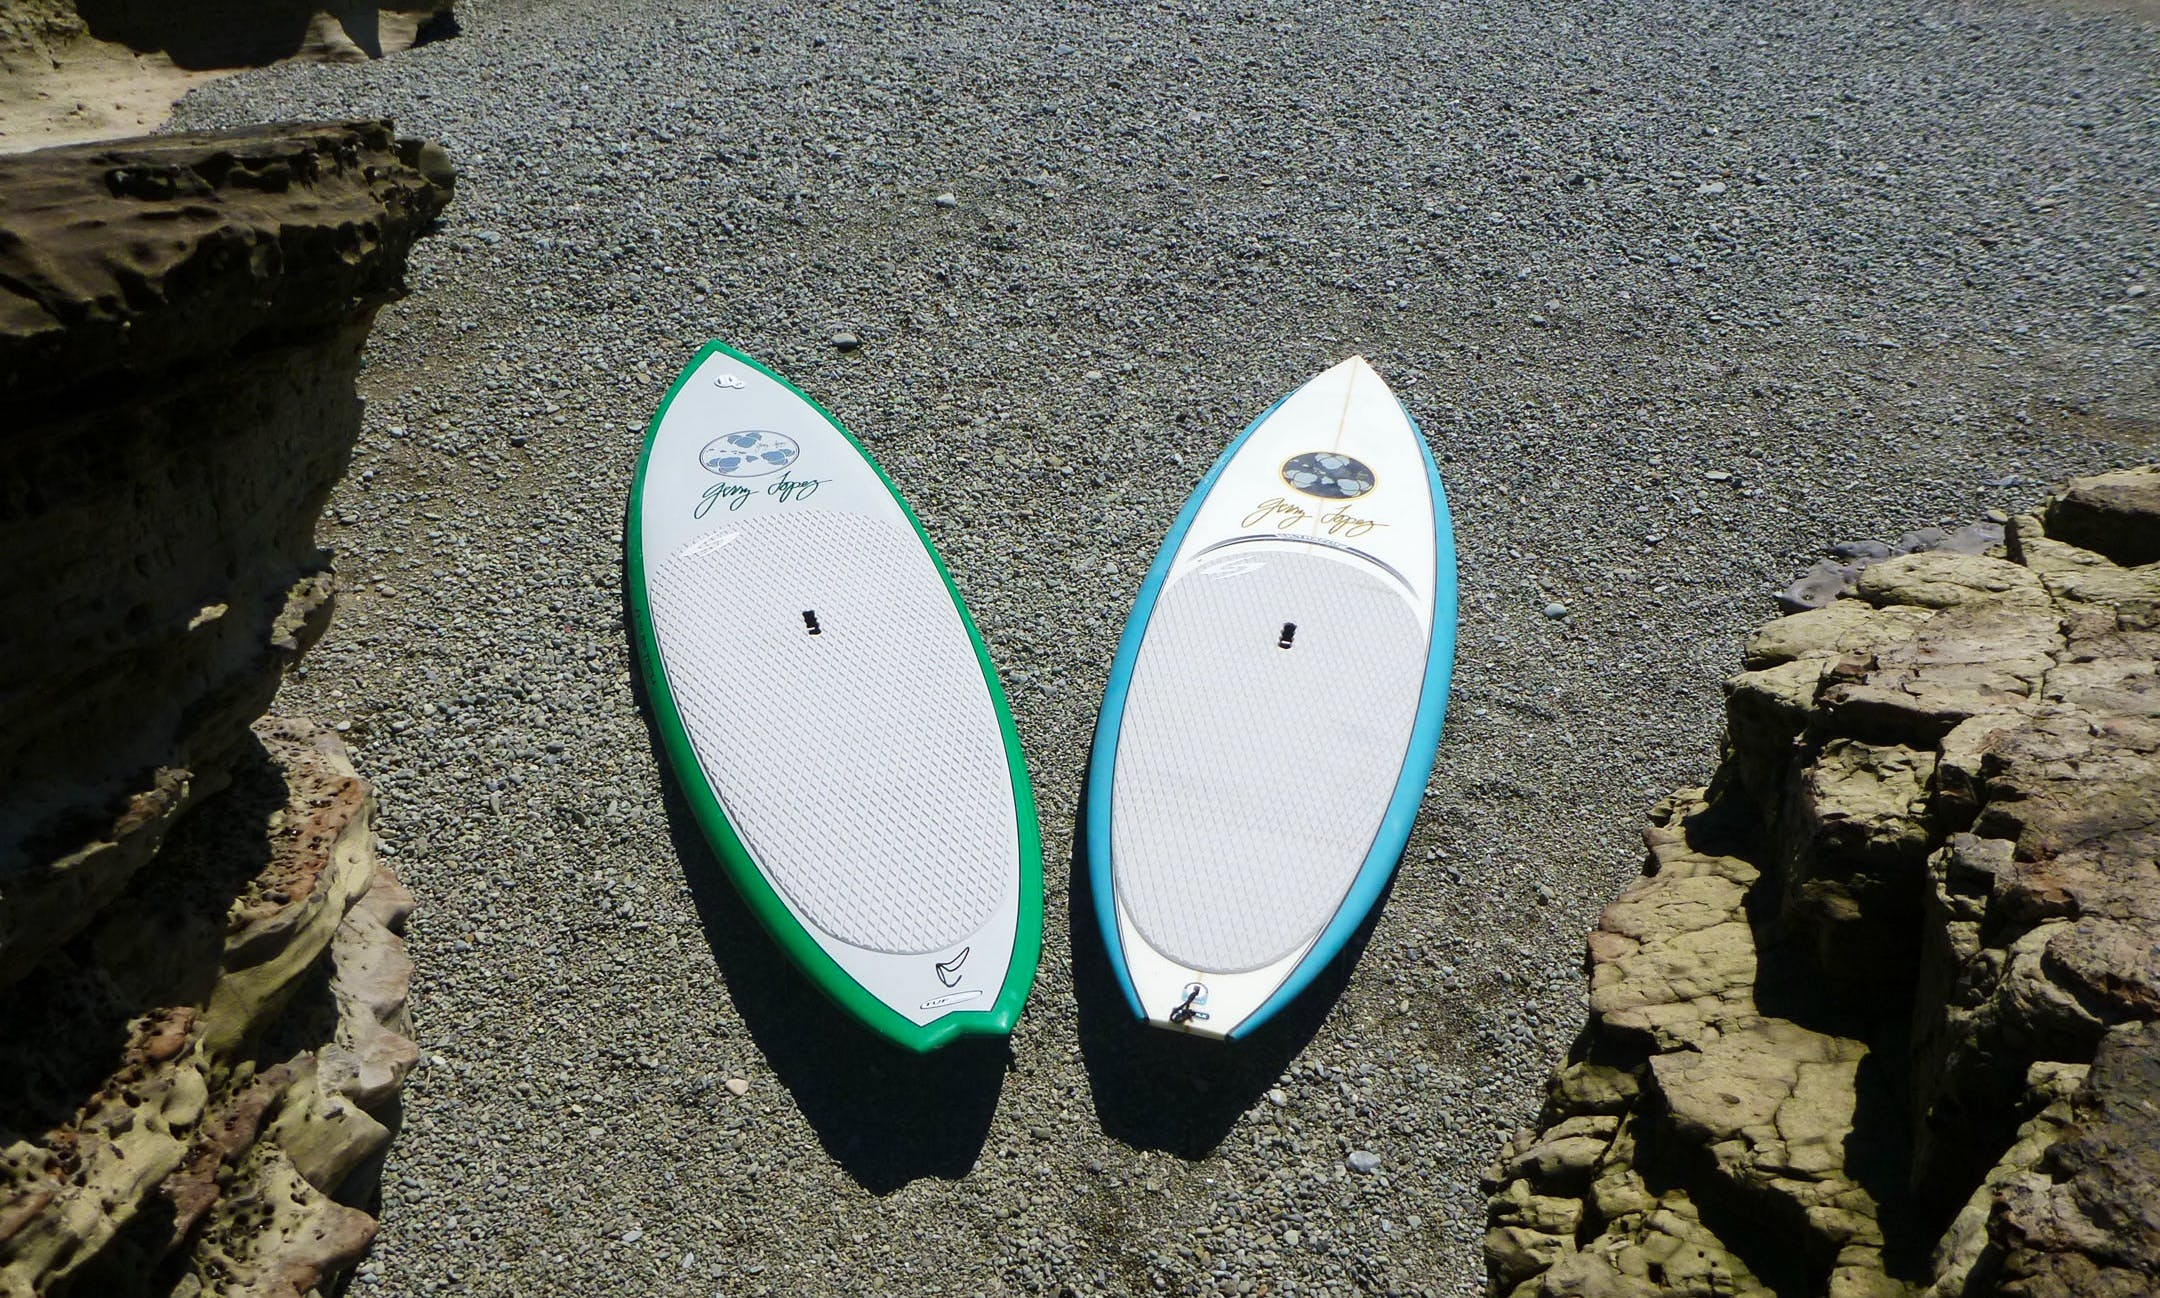 Stand Up Paddle Board Rental In Mal Pais